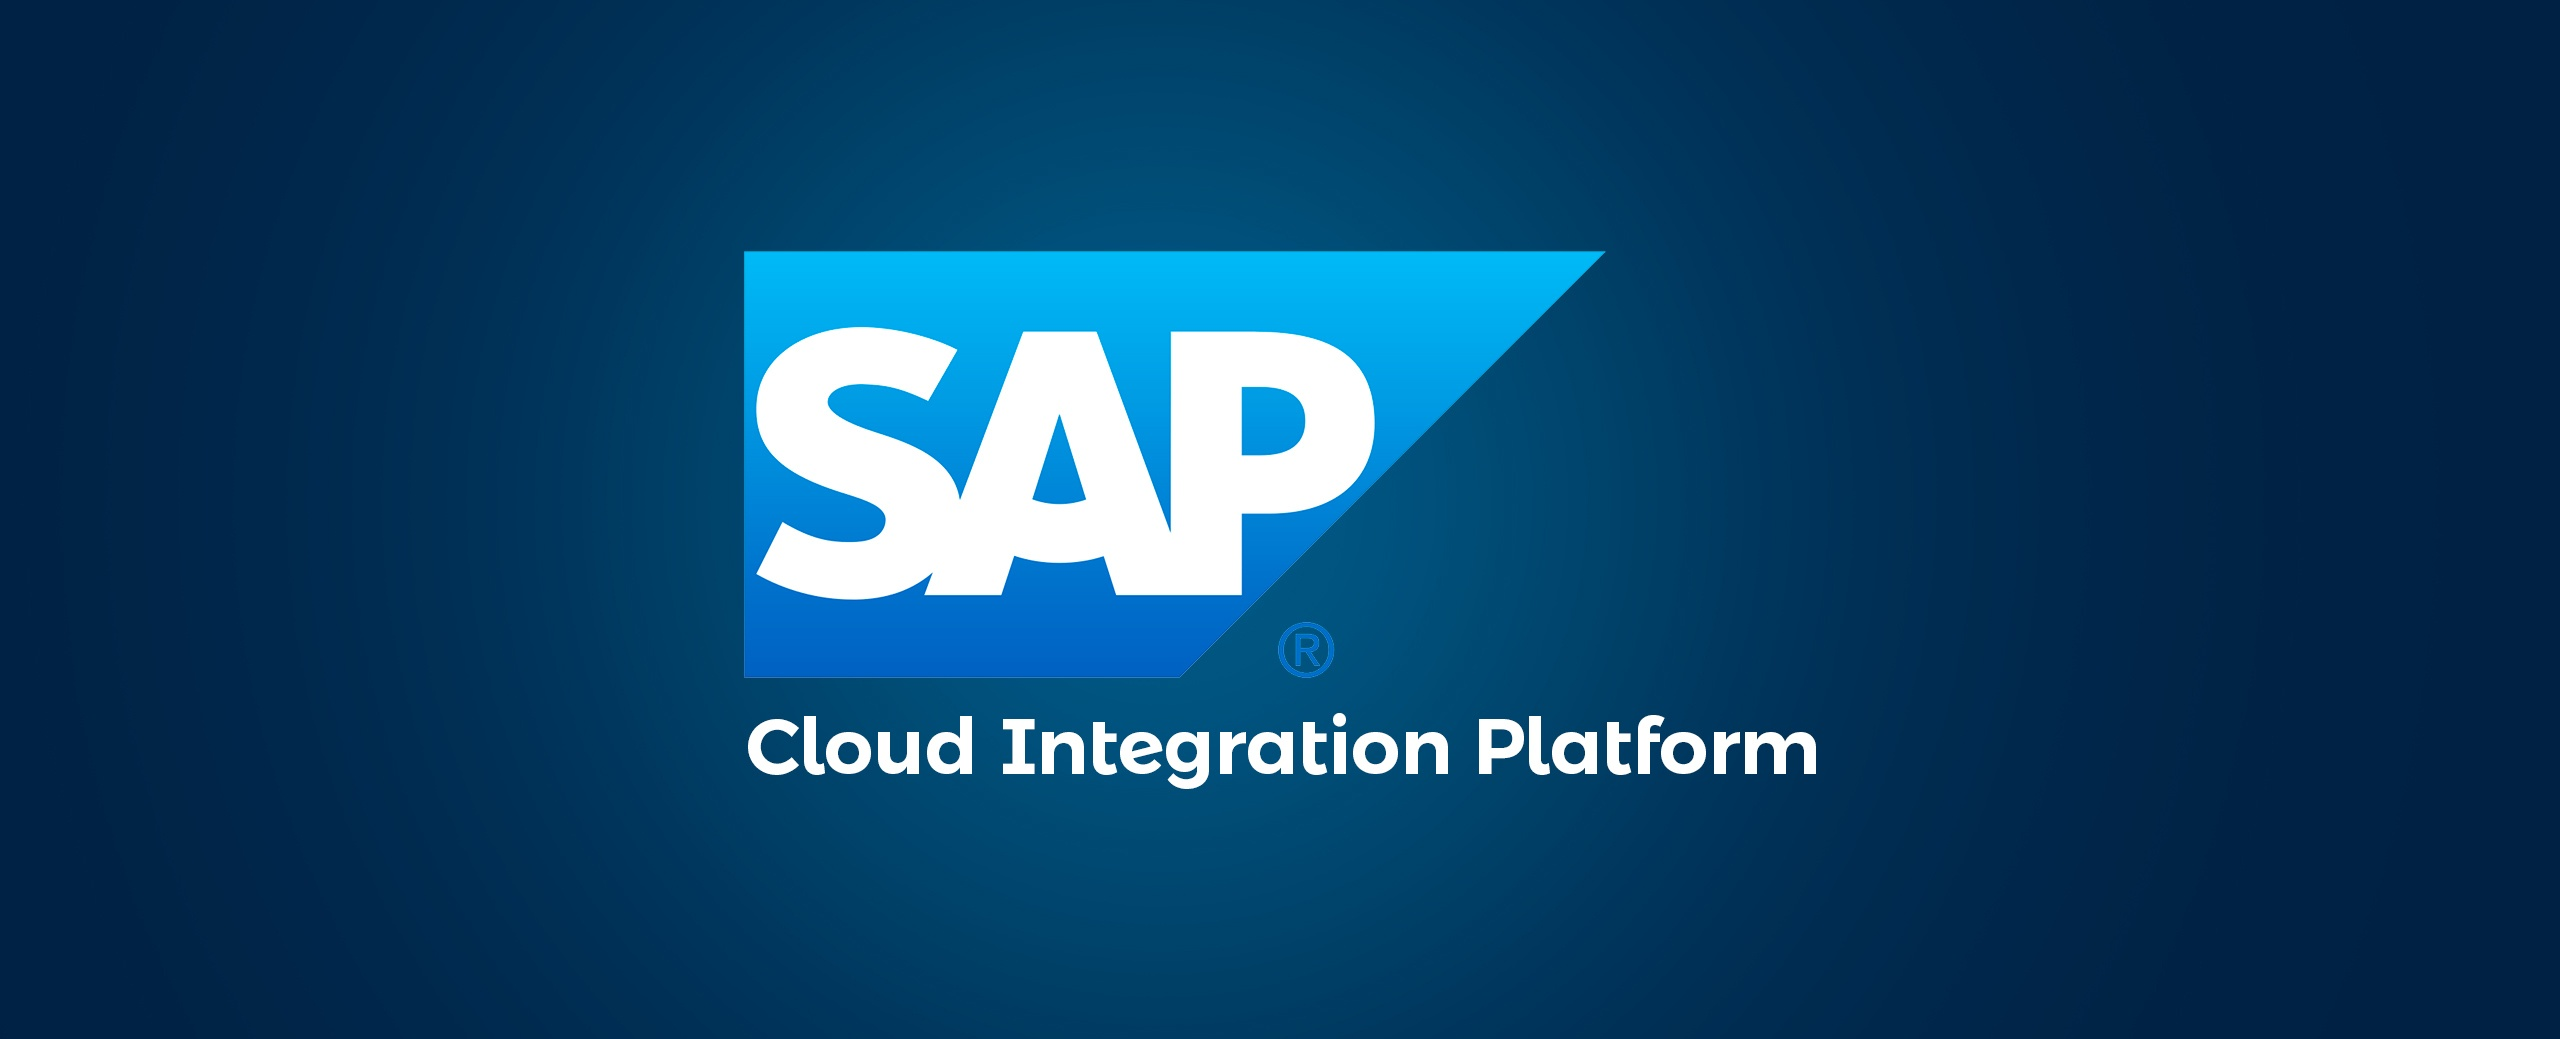 SAP-Cloud-Integration-Platform---All-You-Need-To-Know